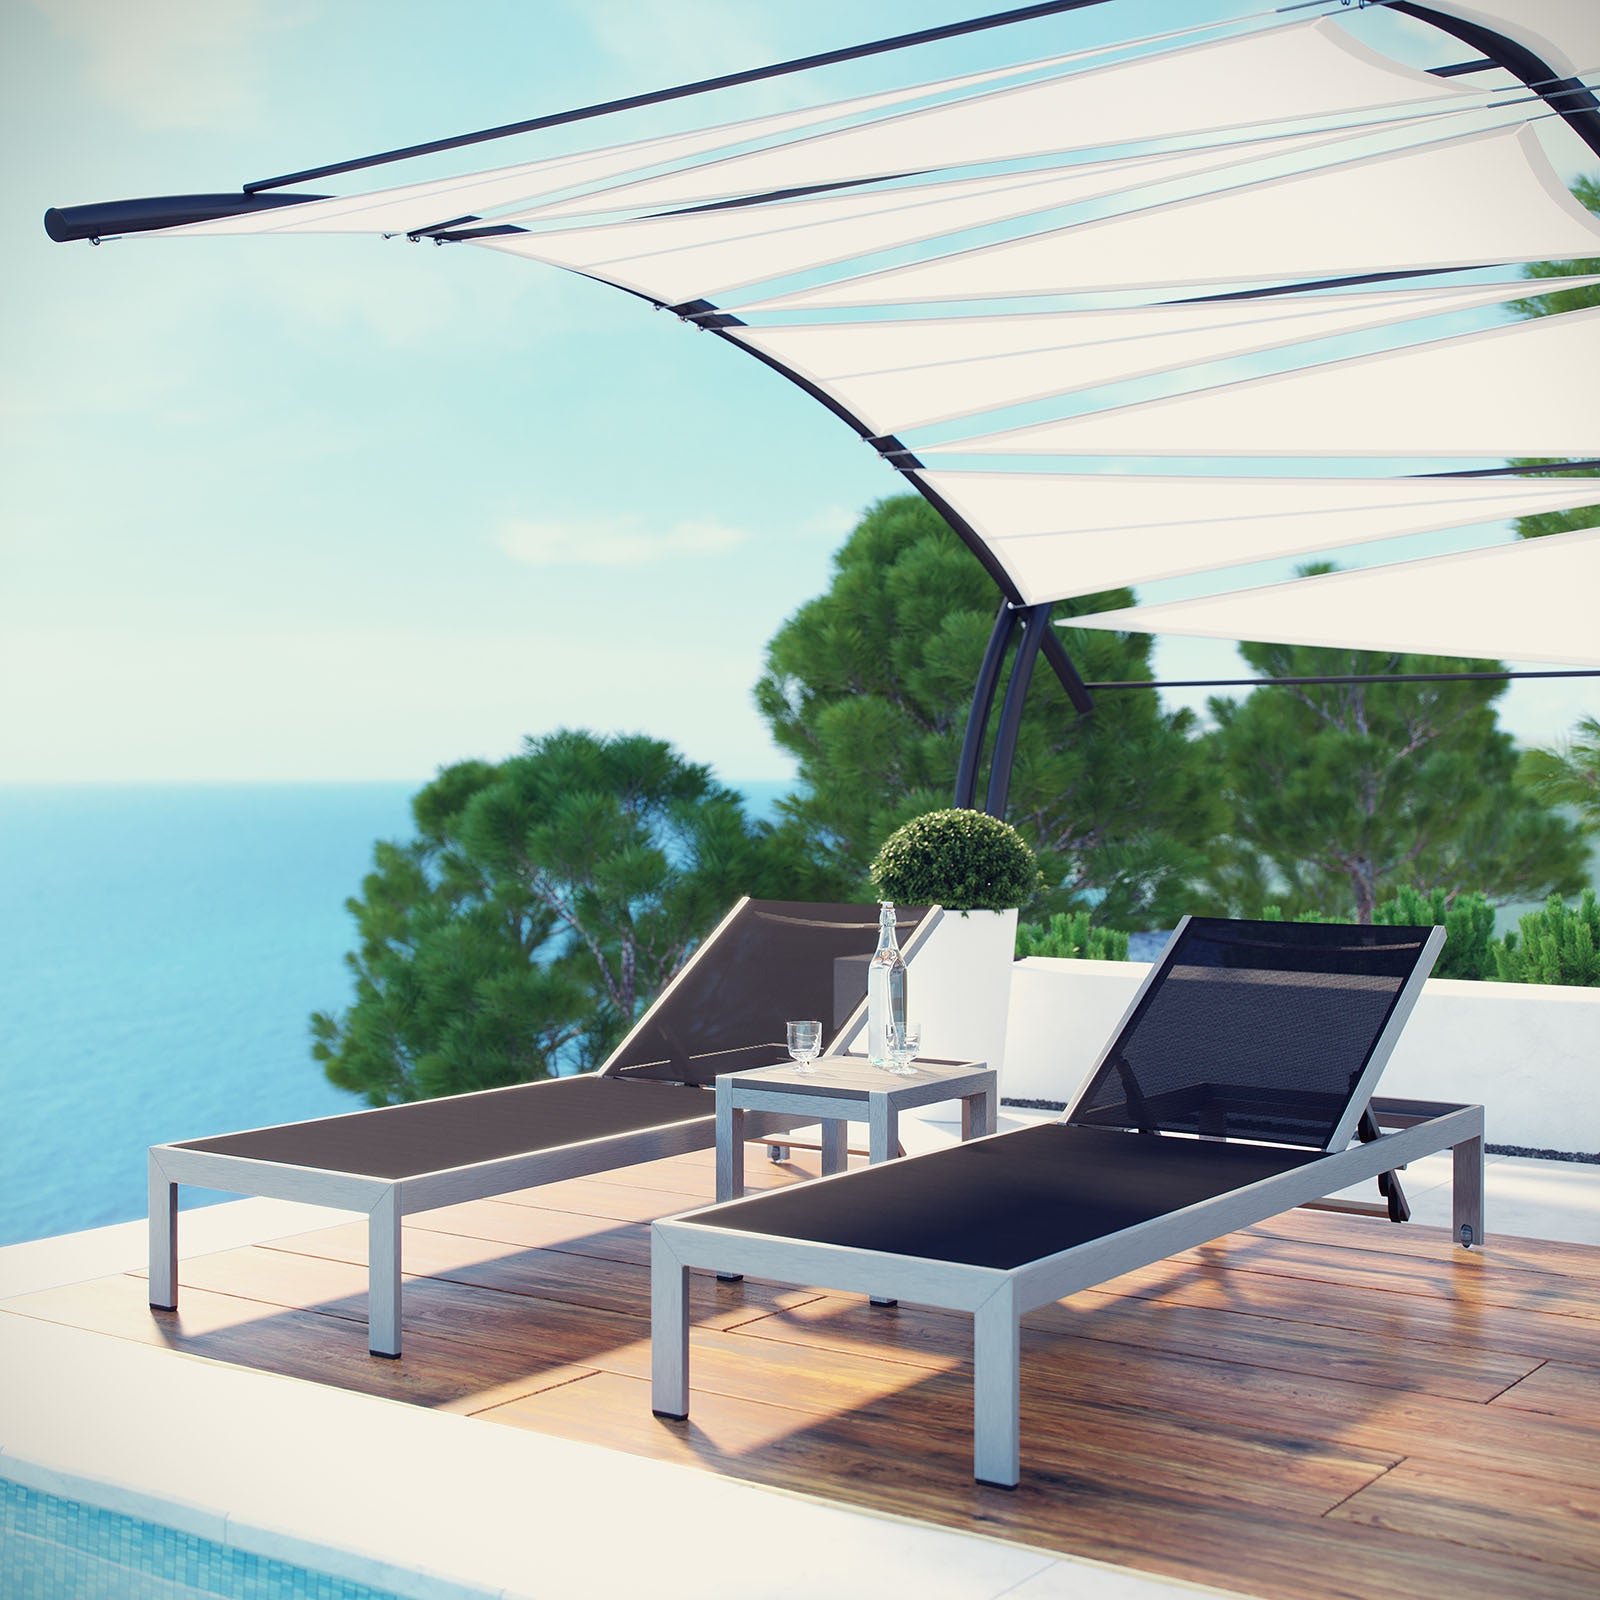 Most Recently Released Shore Aluminum Outdoor Chaise Lounges With Regard To Shore Aluminum Outdoor Chaise Set Of 3 (Gallery 8 of 25)